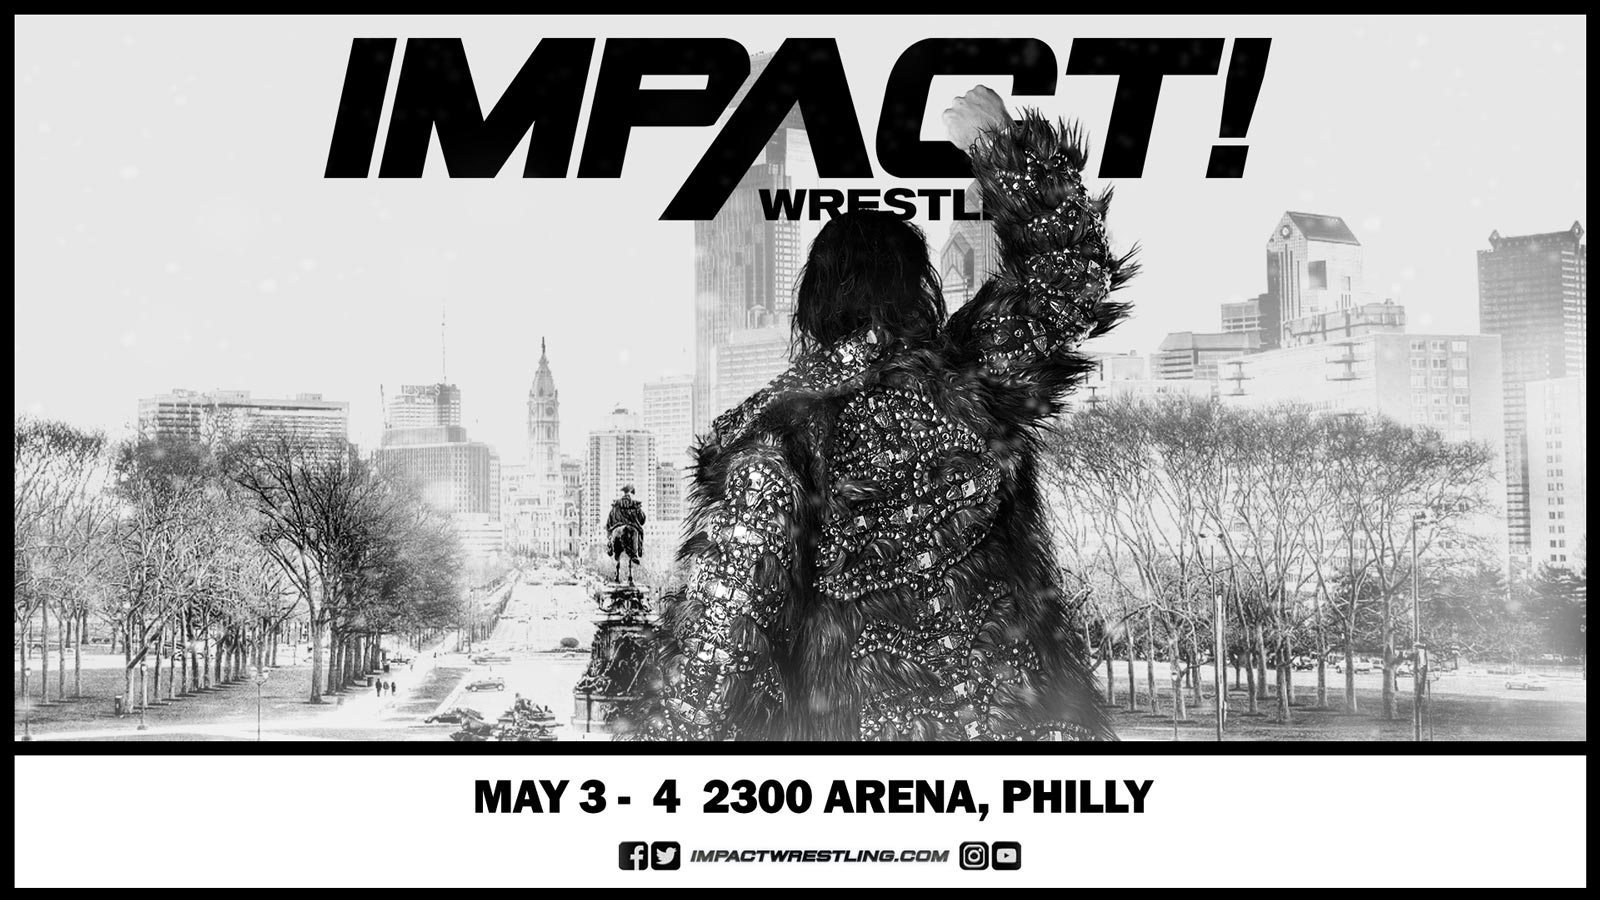 IMPACT Wrestling 2300 Arena Philly